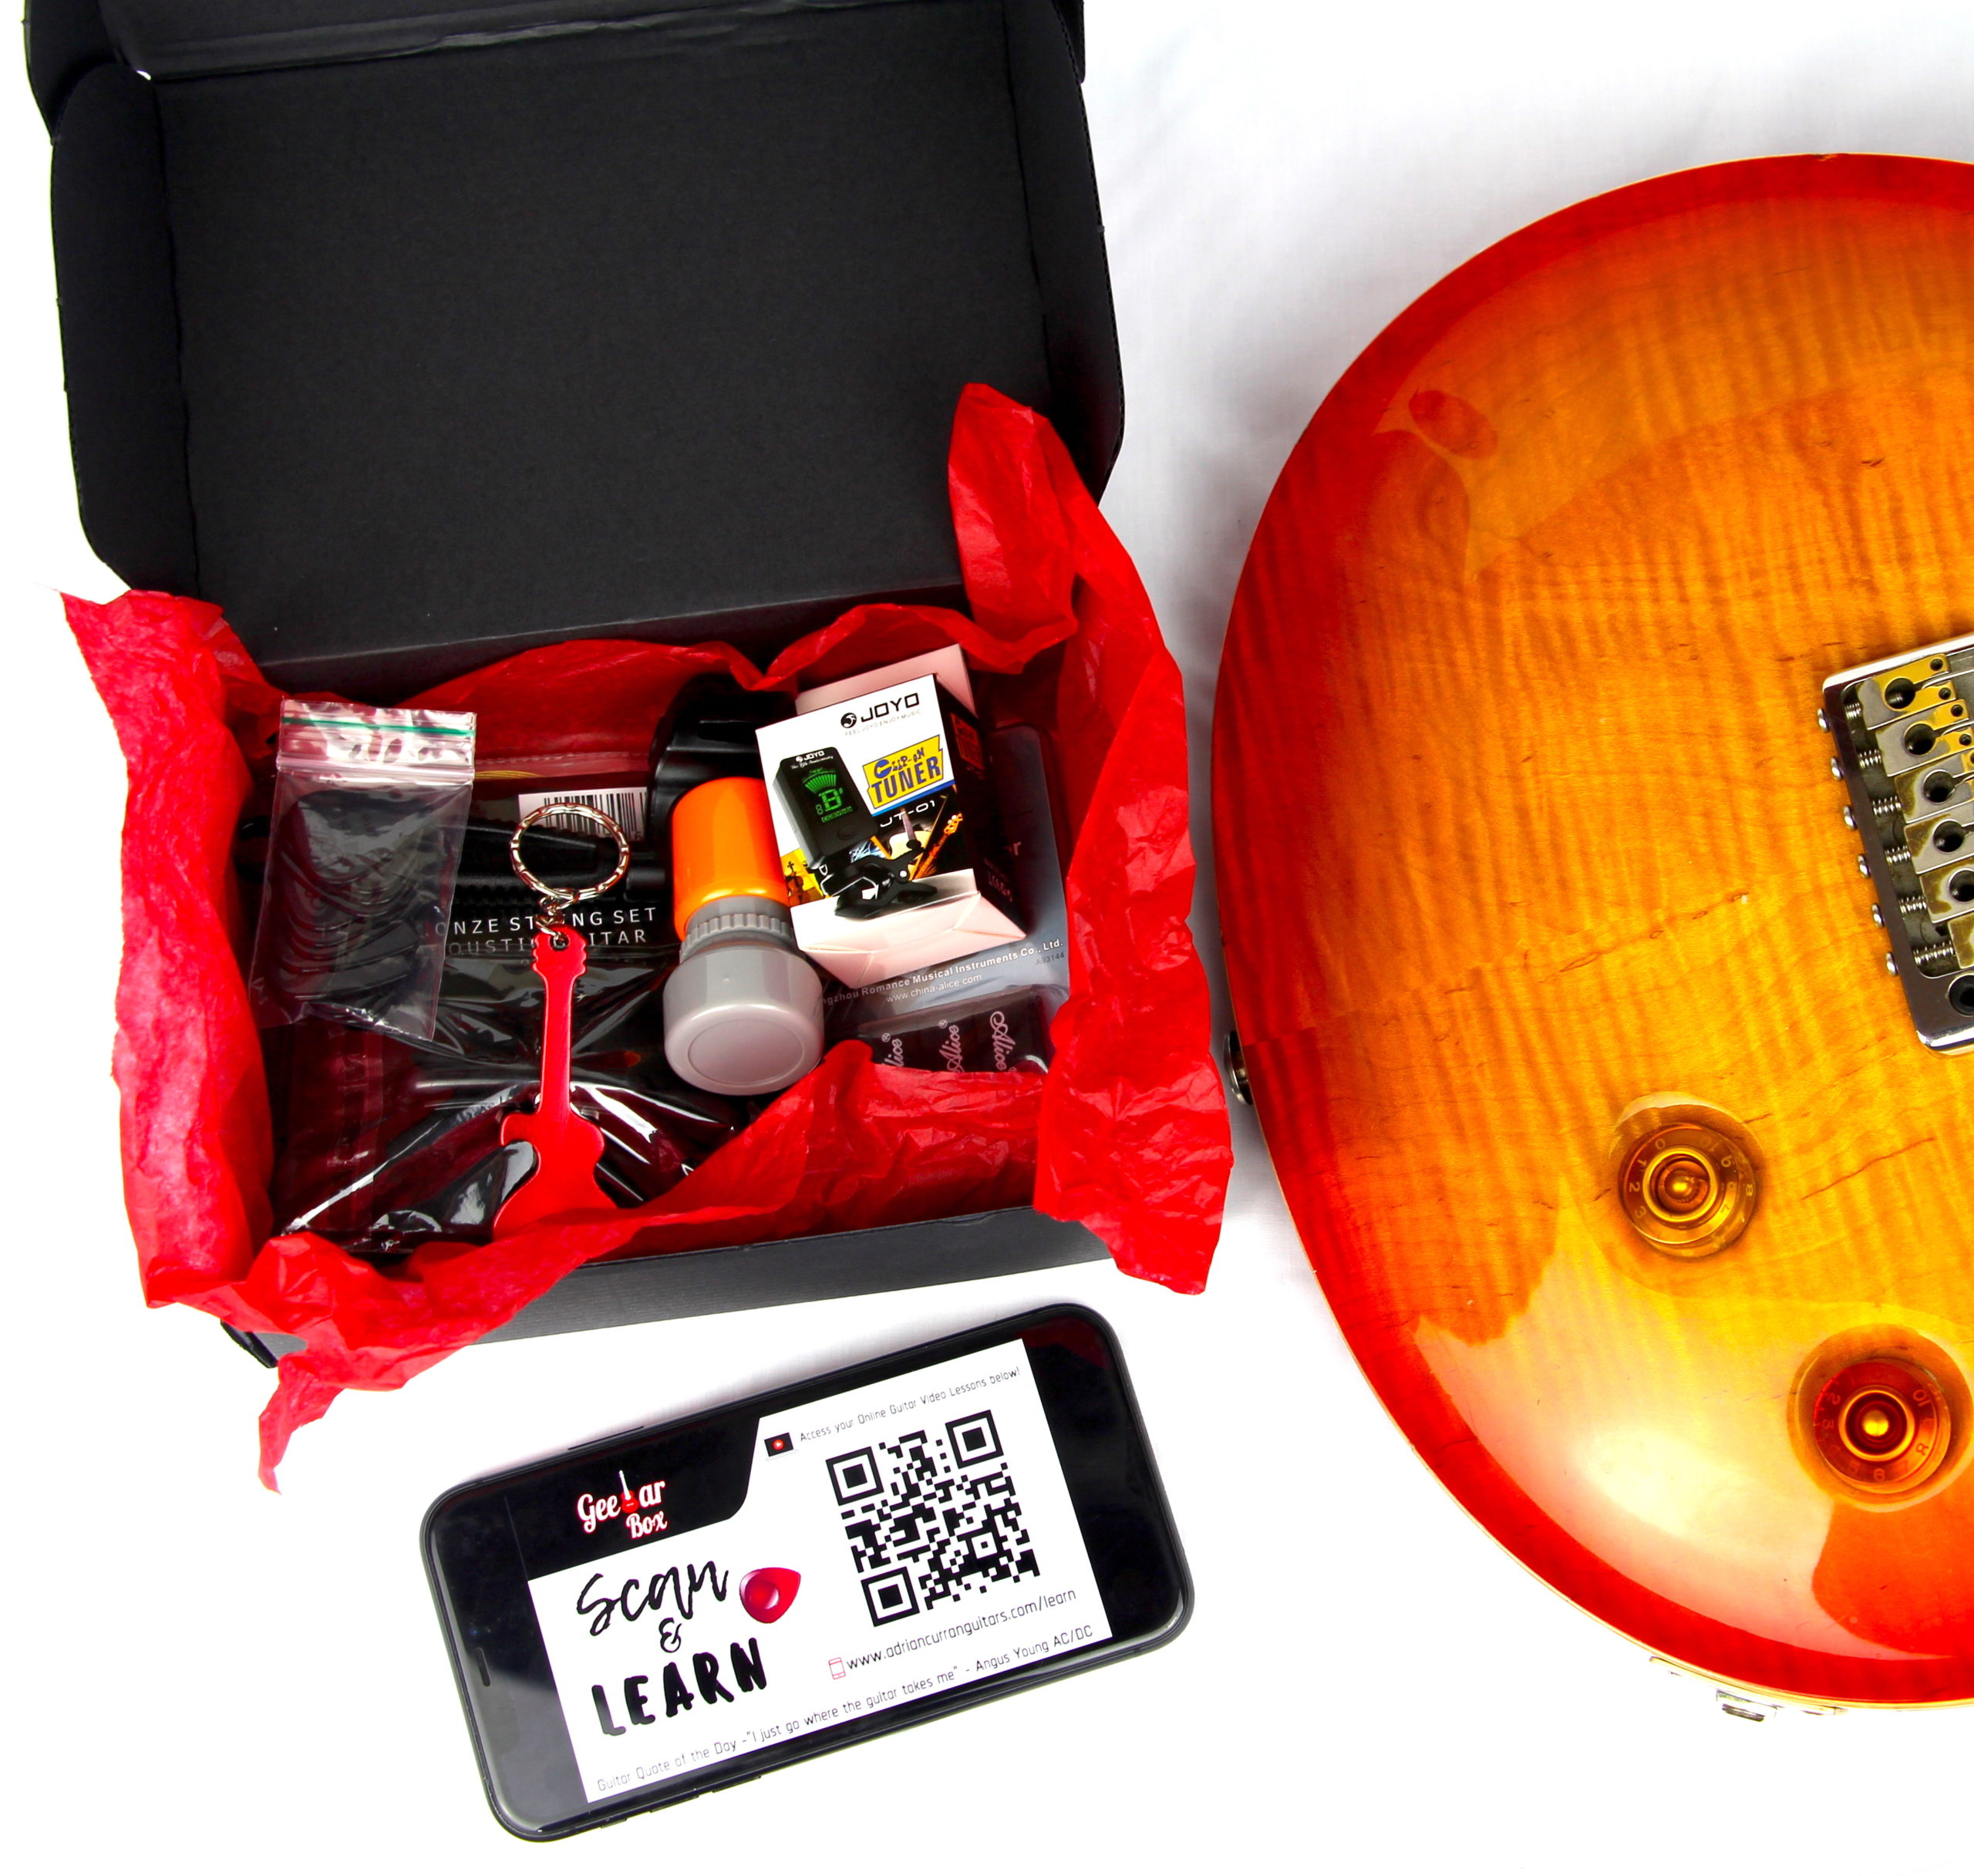 Geetar Box The perfect Gift for a Guitarist